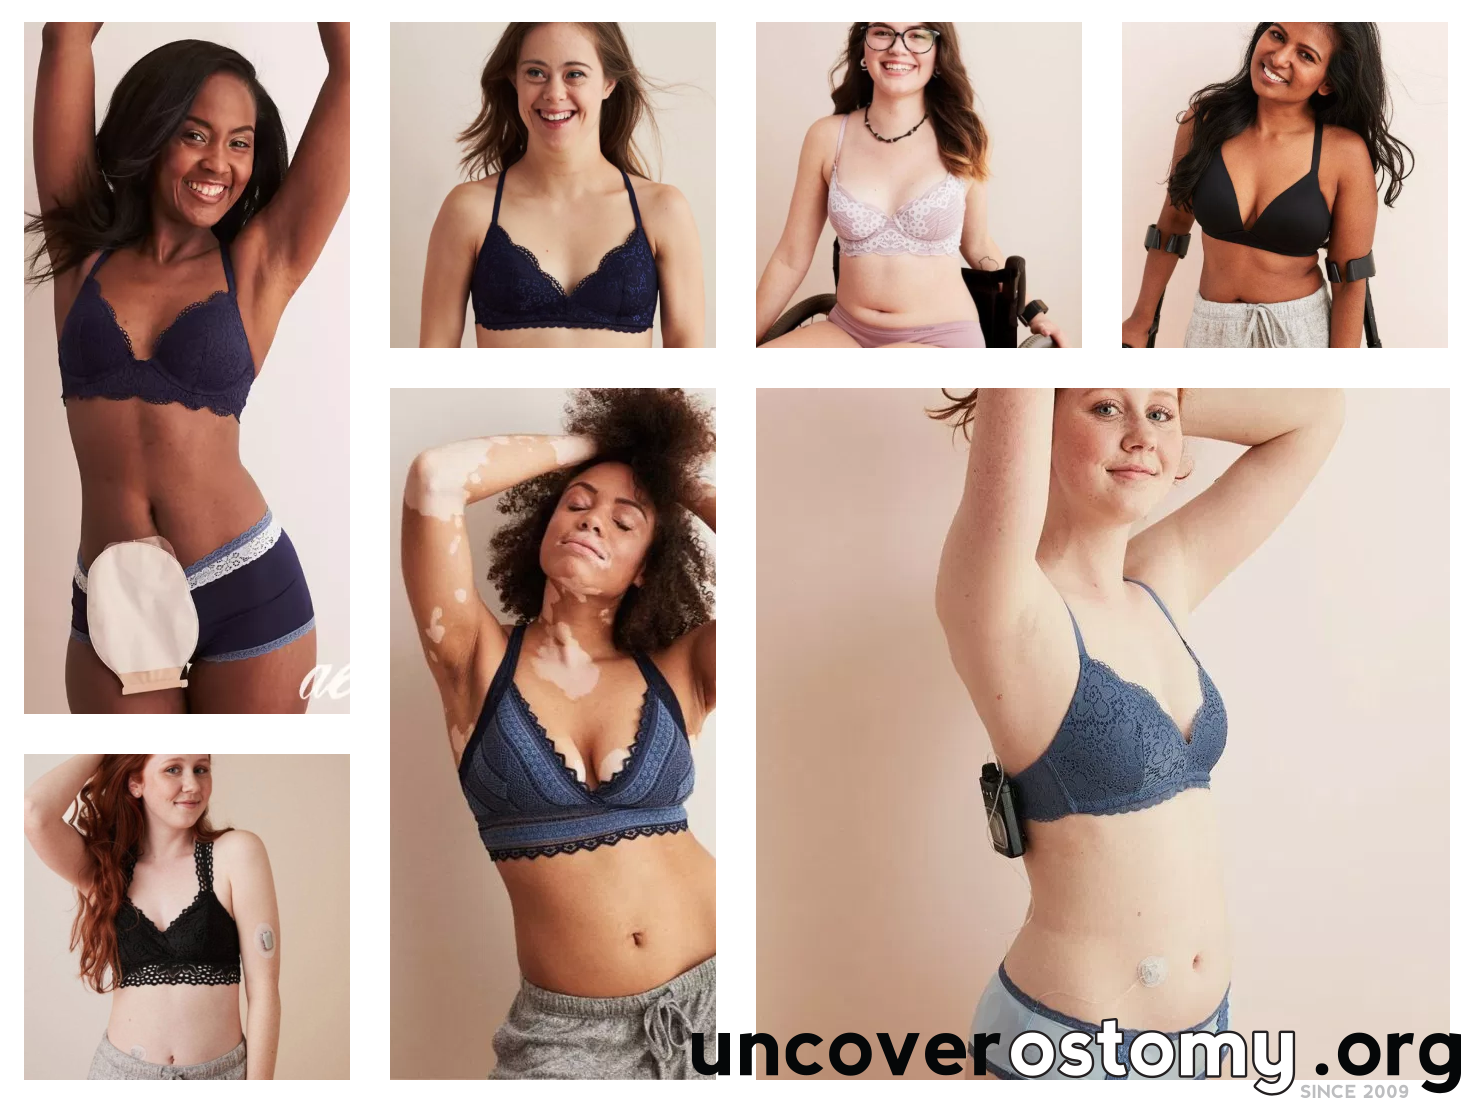 uncover-ostomy-awareness-arie-real-featured